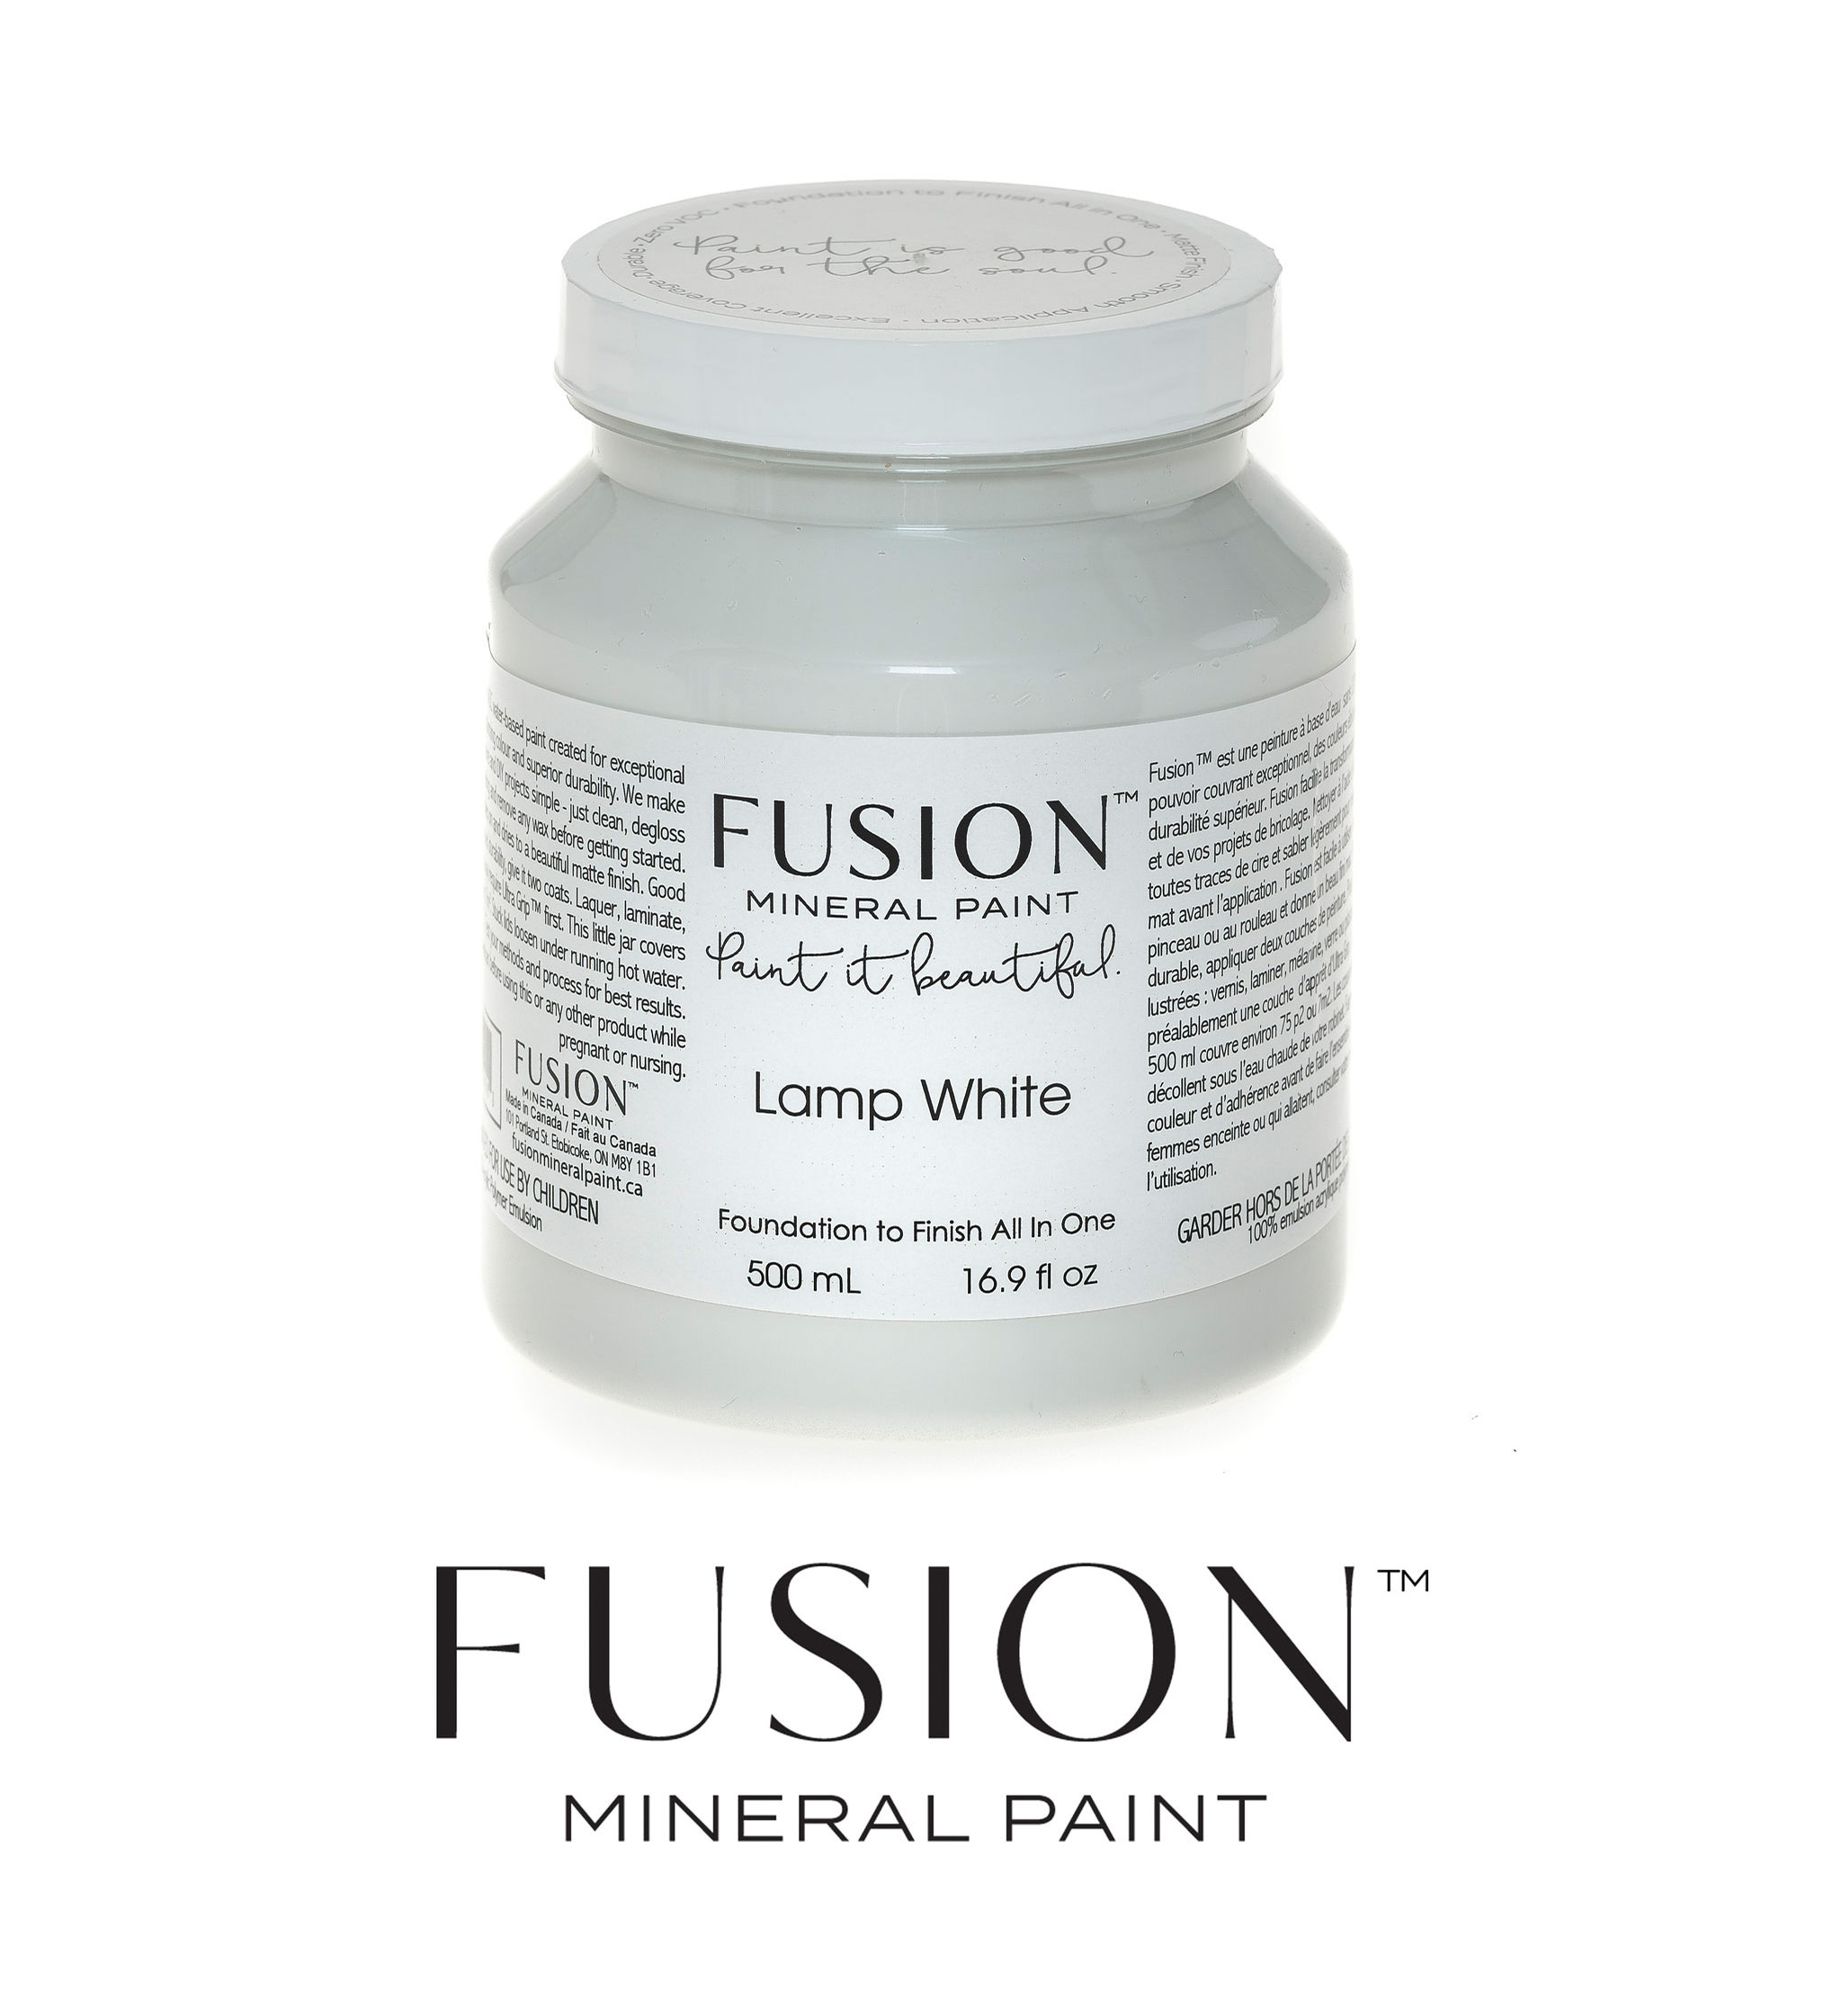 Fusion Mineral Paint - Lamp White (Pint)